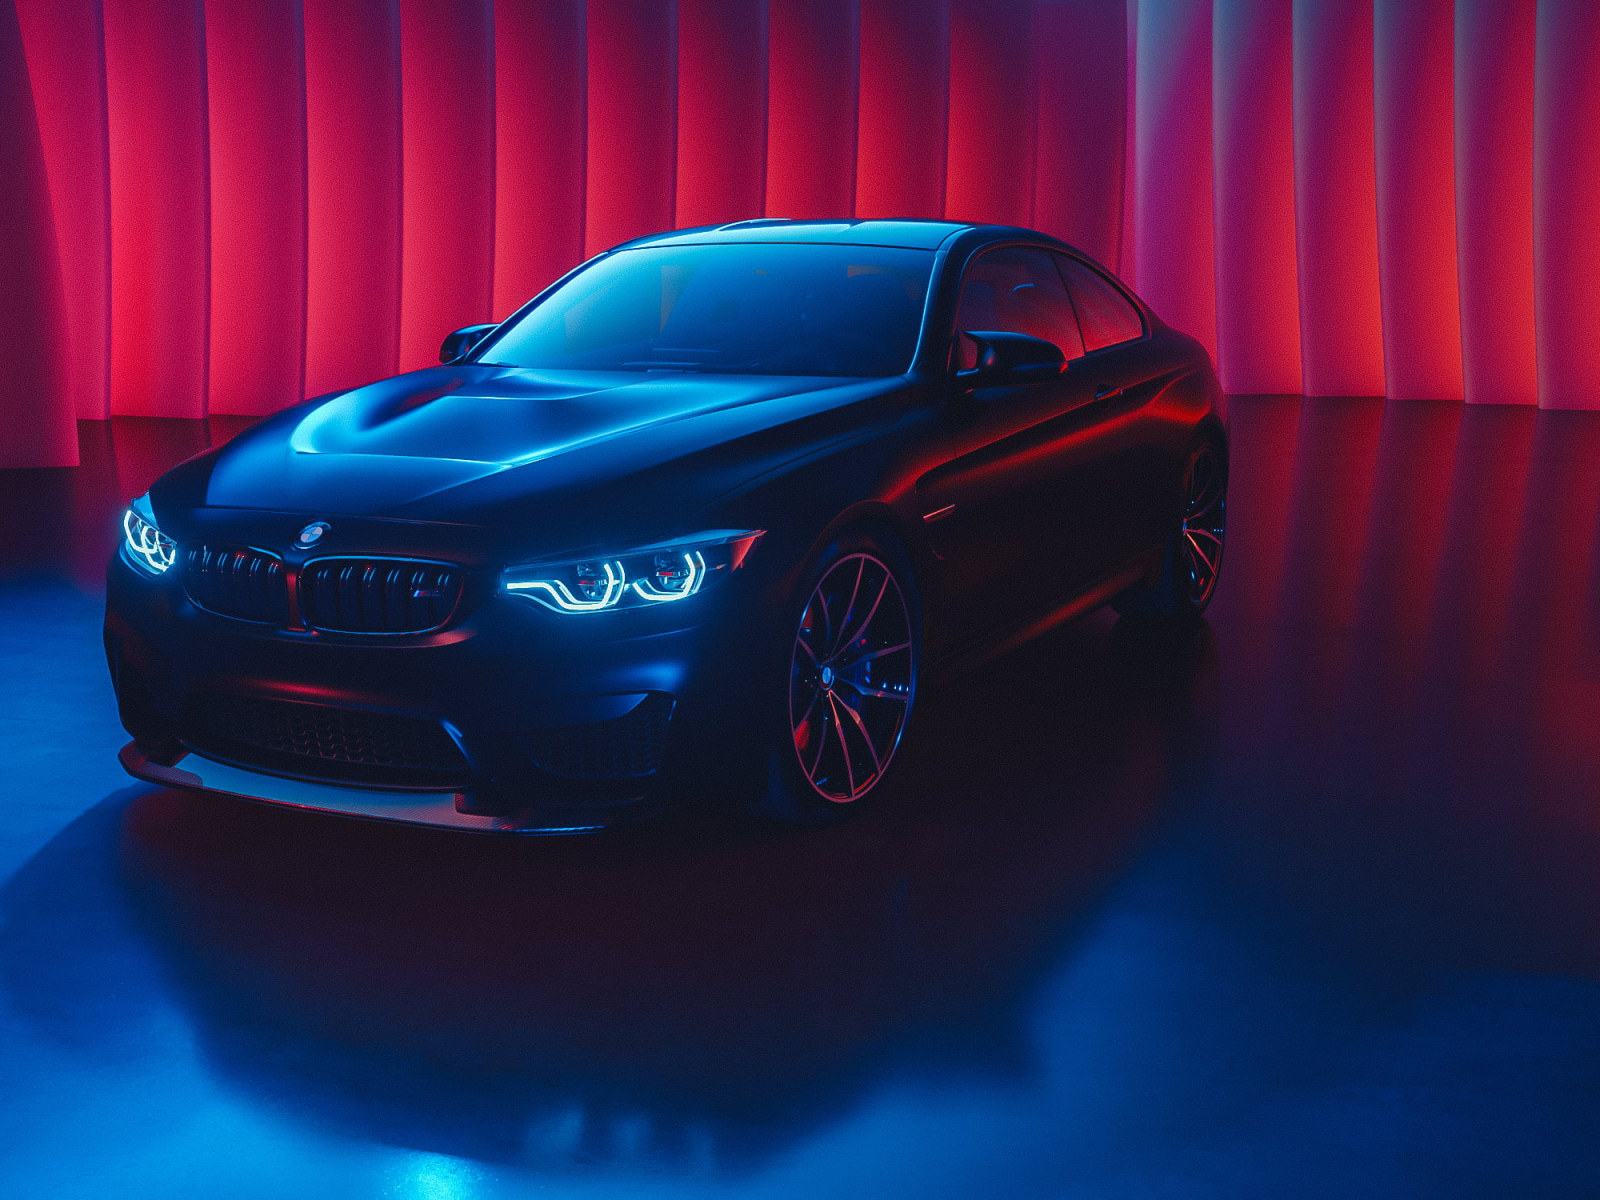 The wallpaper trend is going strong. Black Bmw Sedan Bmw M4 Car Cyan Blue Red Glowing Black Cars Wallpaper Wallpaper For You Hd Wallpaper For Desktop Mobile